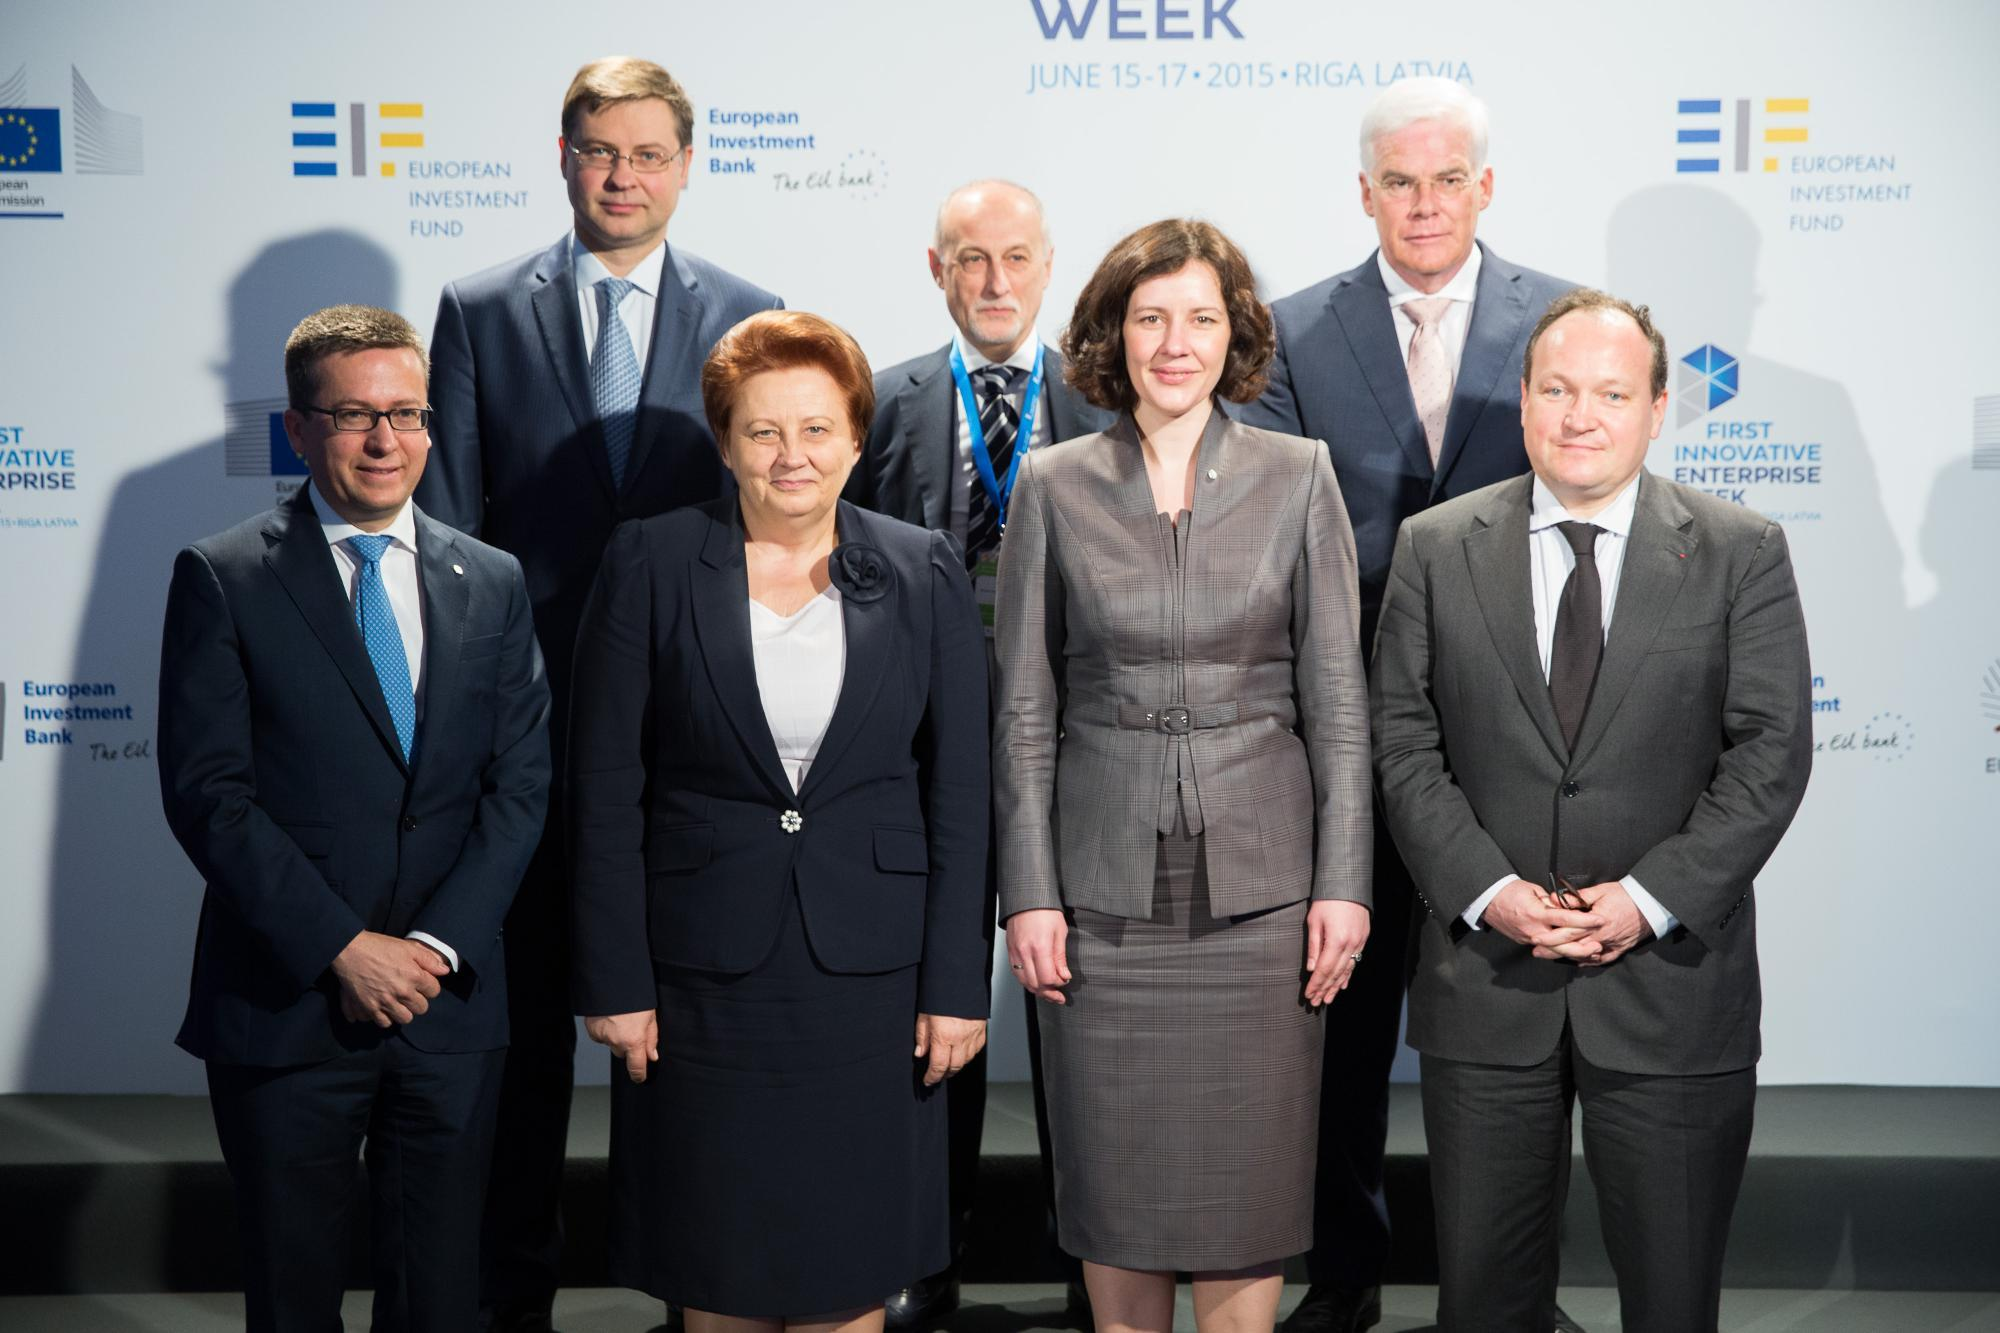 >@EIB/FirstInnovativeEnterpriseWeek